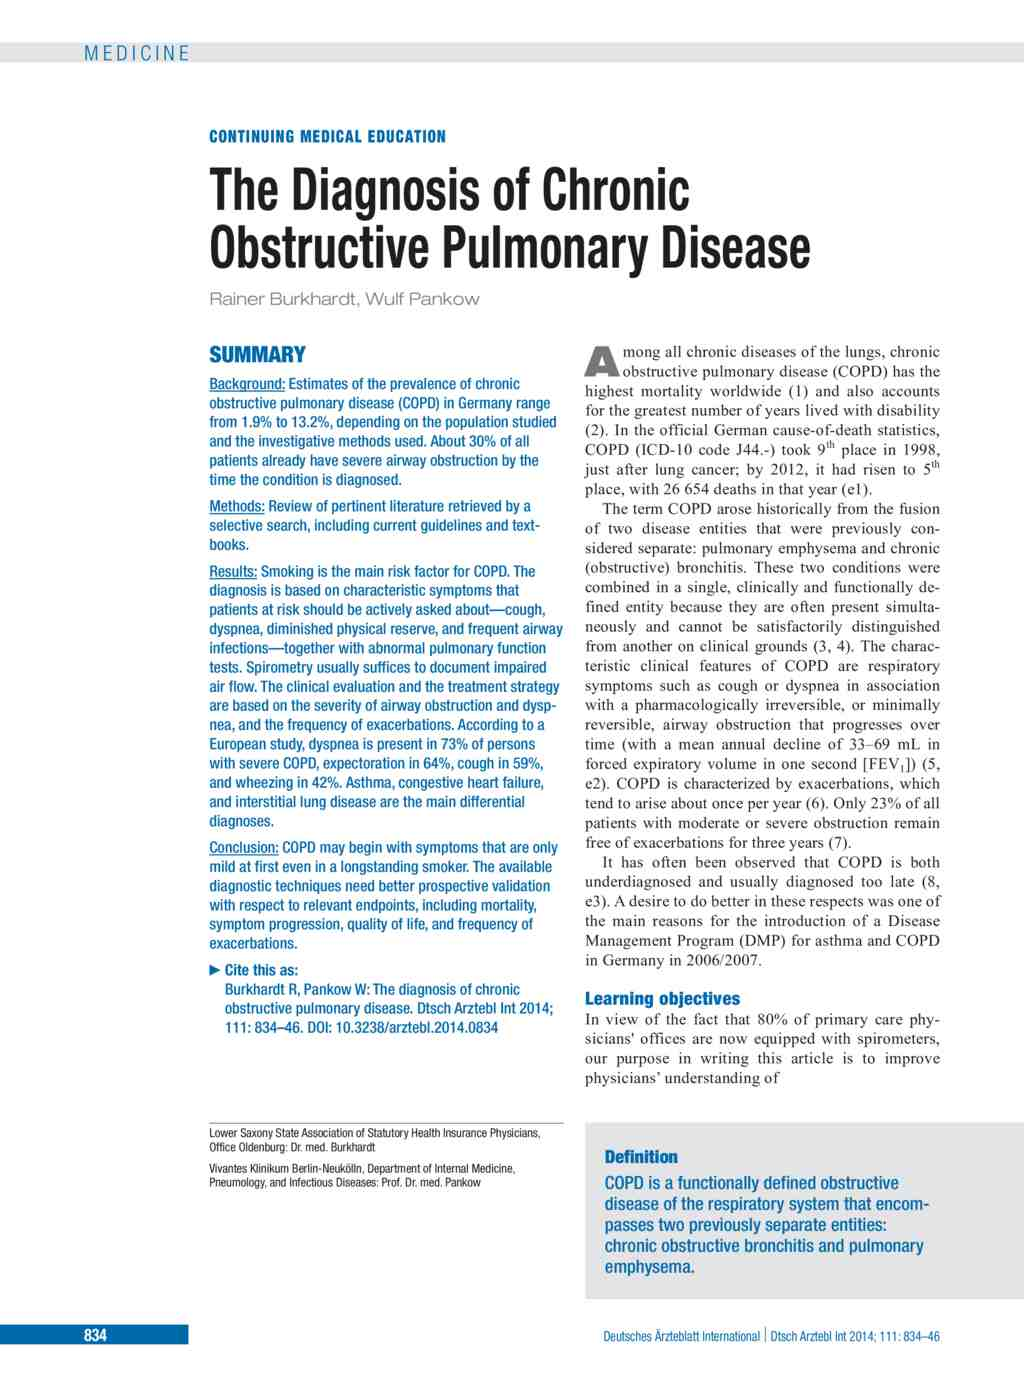 the diagnosis of chronic obstructive pulmonary disease (05.12.2014)